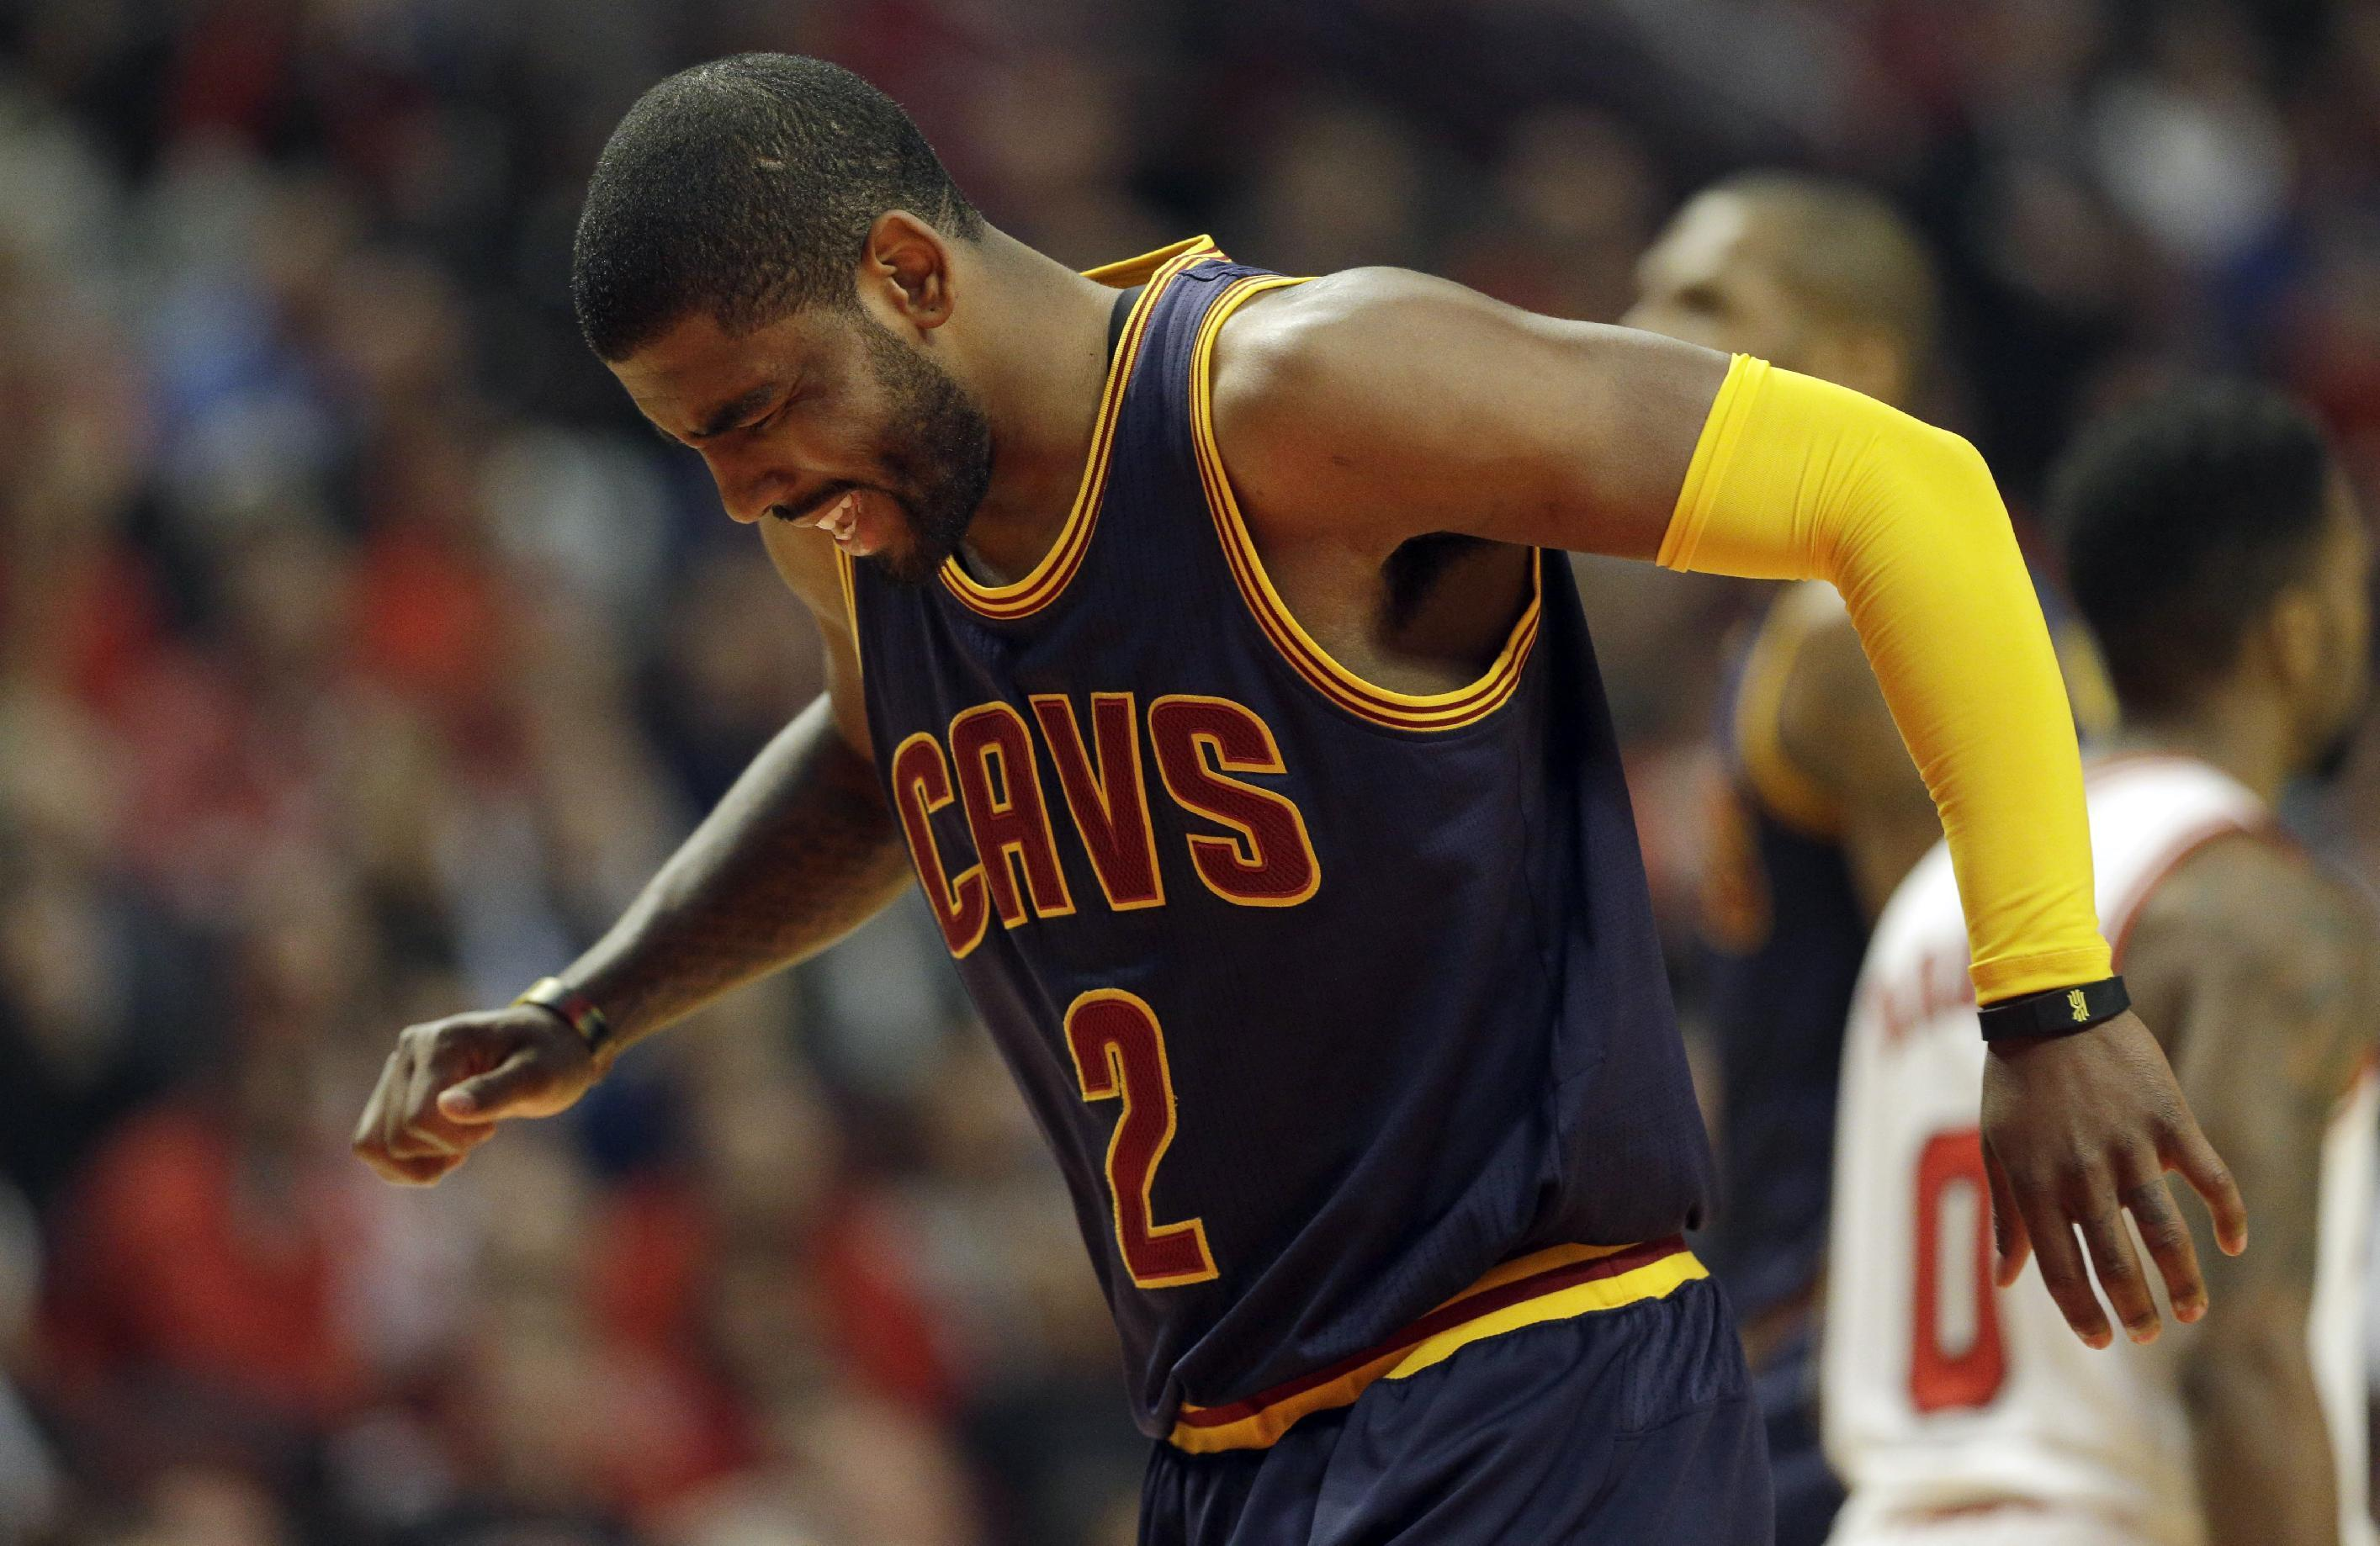 Cavs' Irving held out of Game 2 with sore left knee